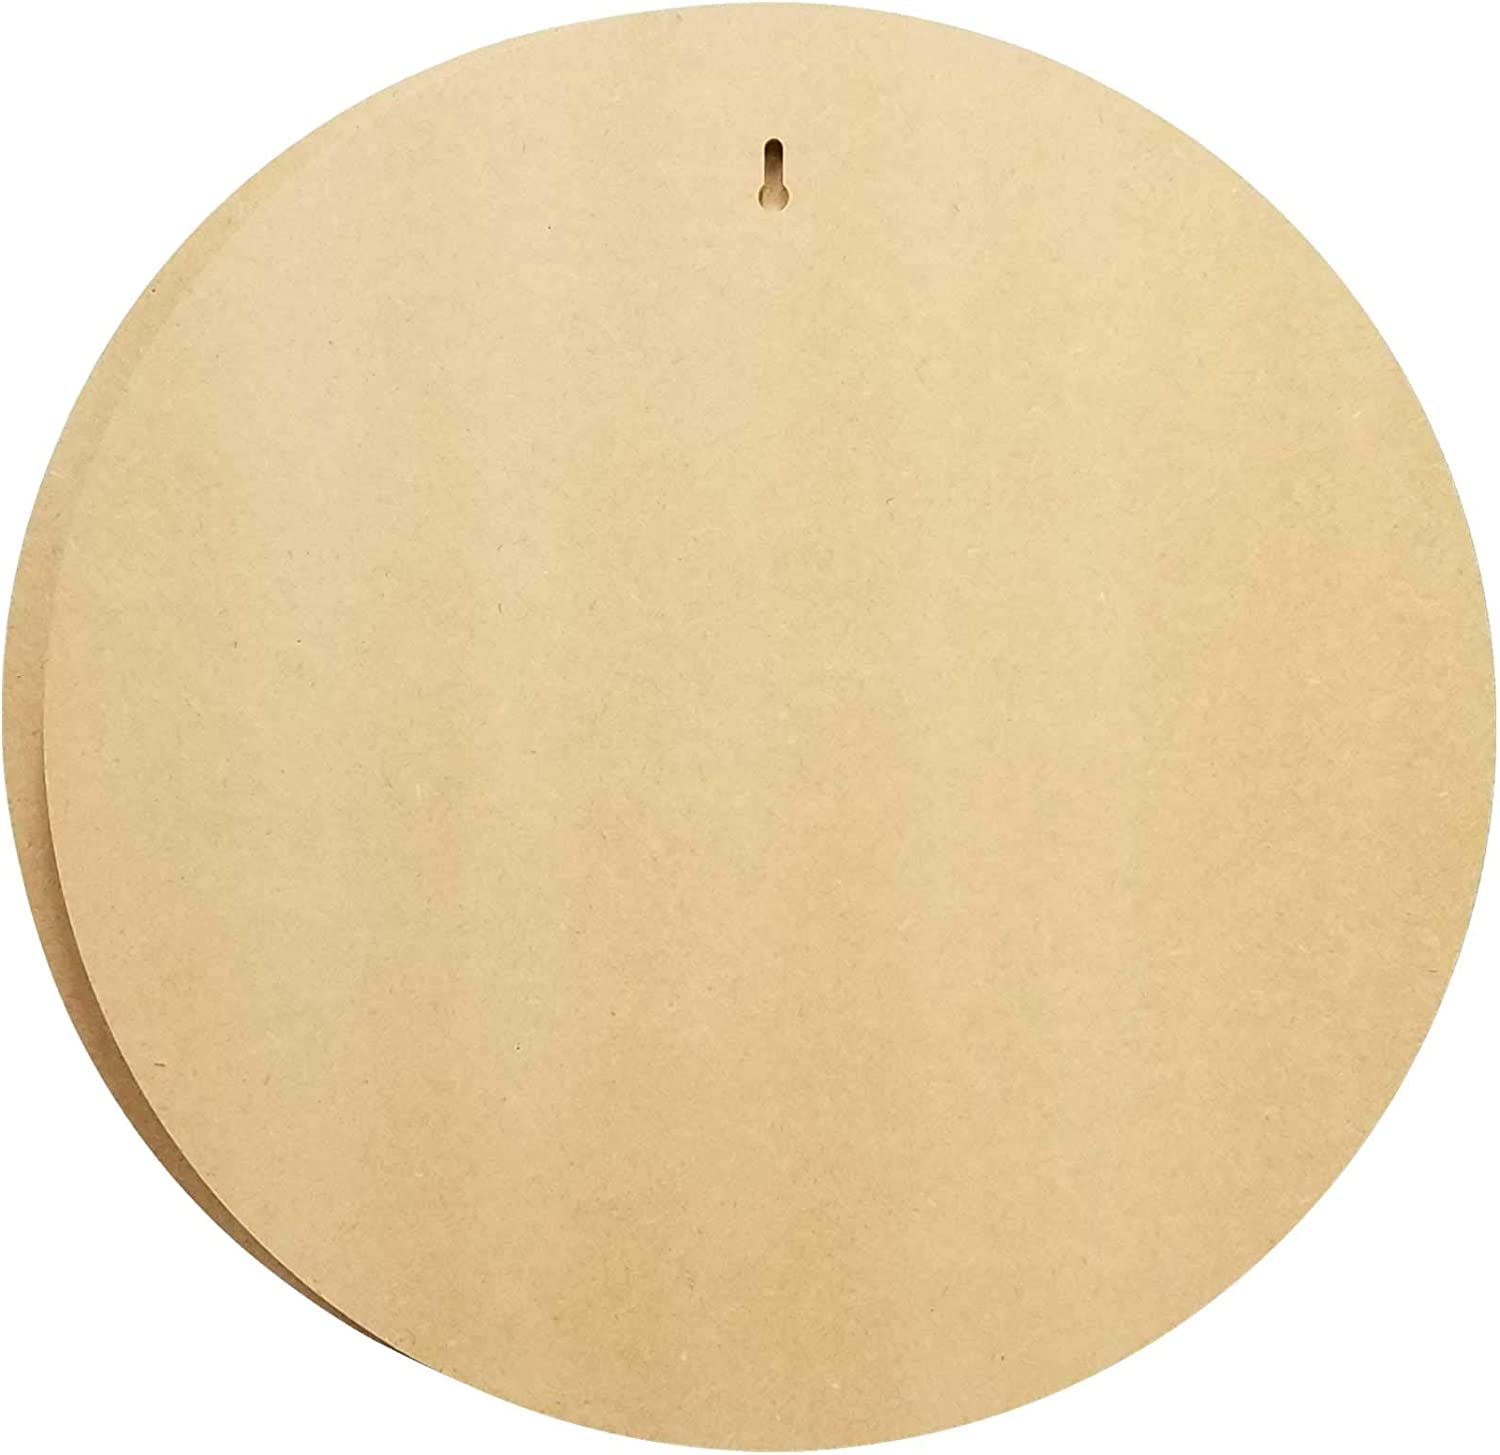 Studio Papilia Round 15x15 inch 2-Pack Wooden Unfinished Max 58% [Alternative dealer] OFF Shap